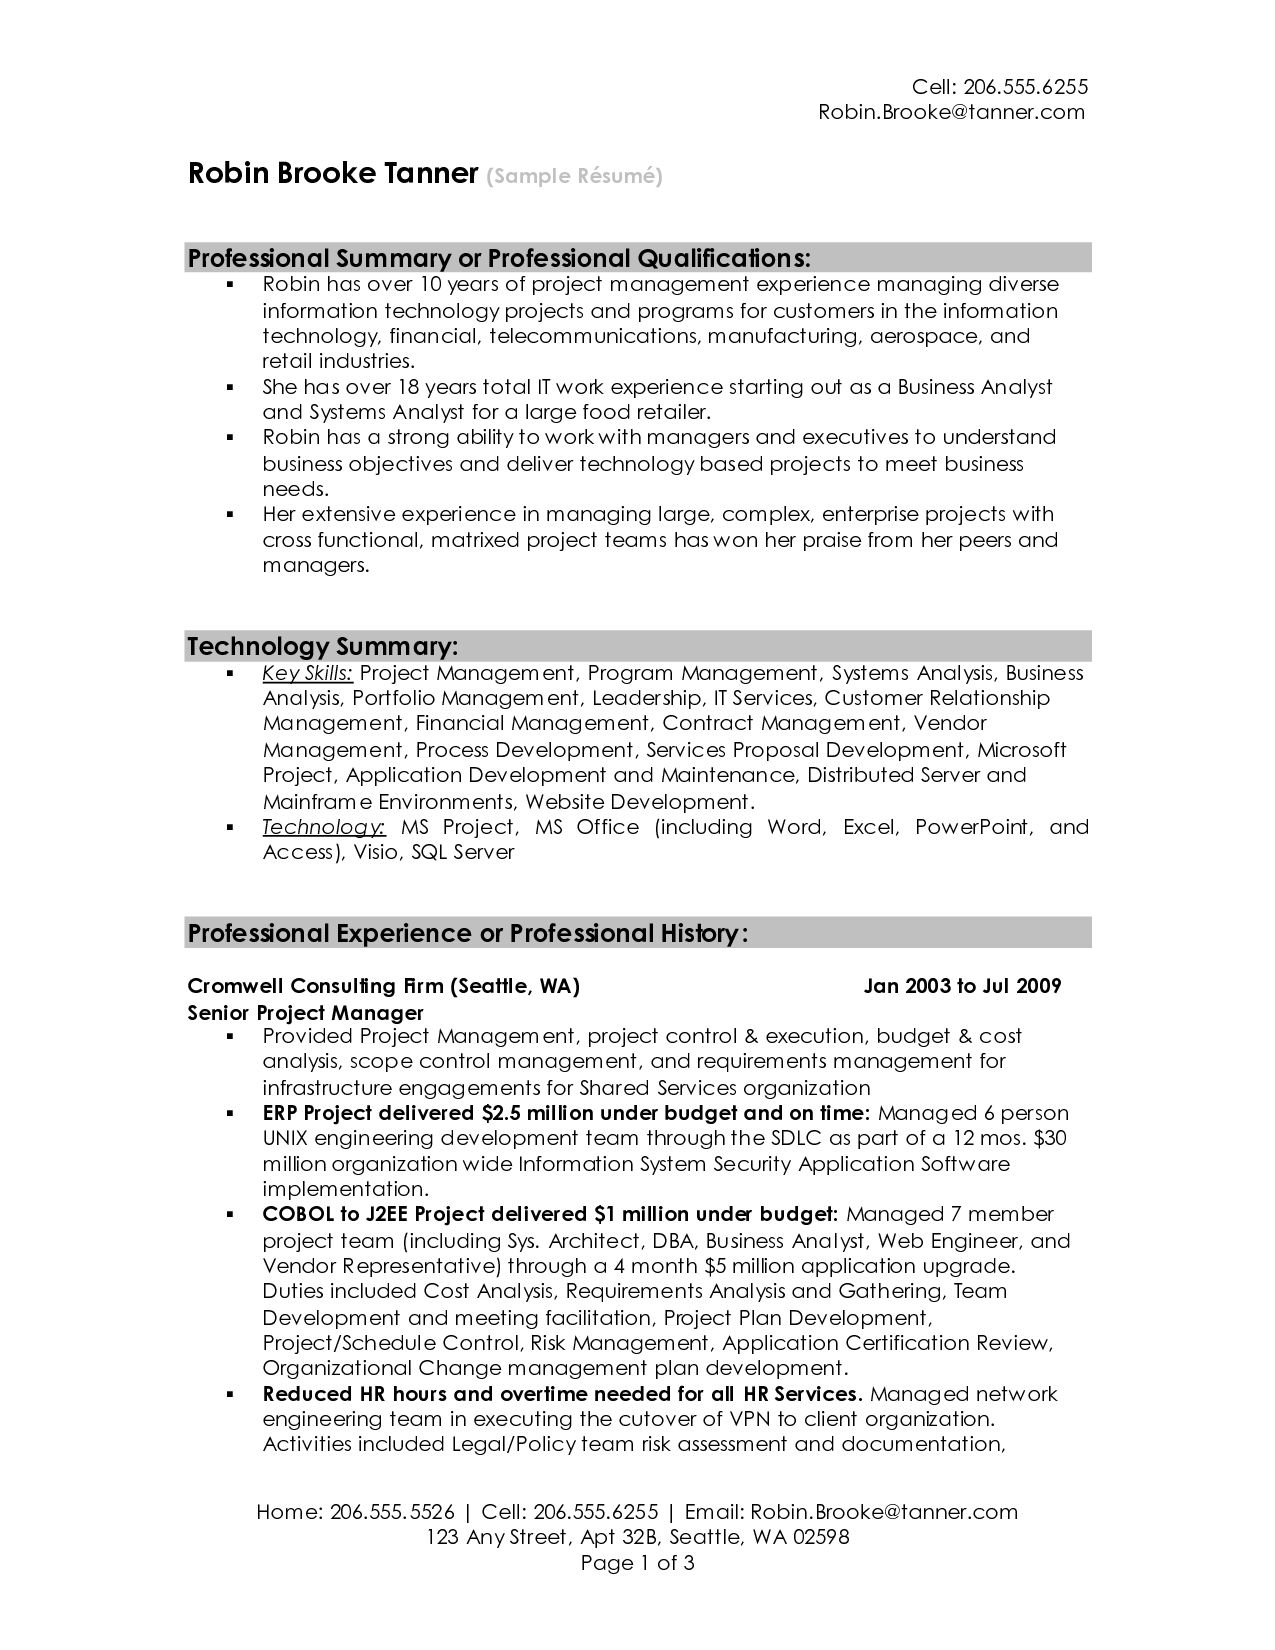 A Summary On A Resume Professional Summary Resume Examples Professional Resume